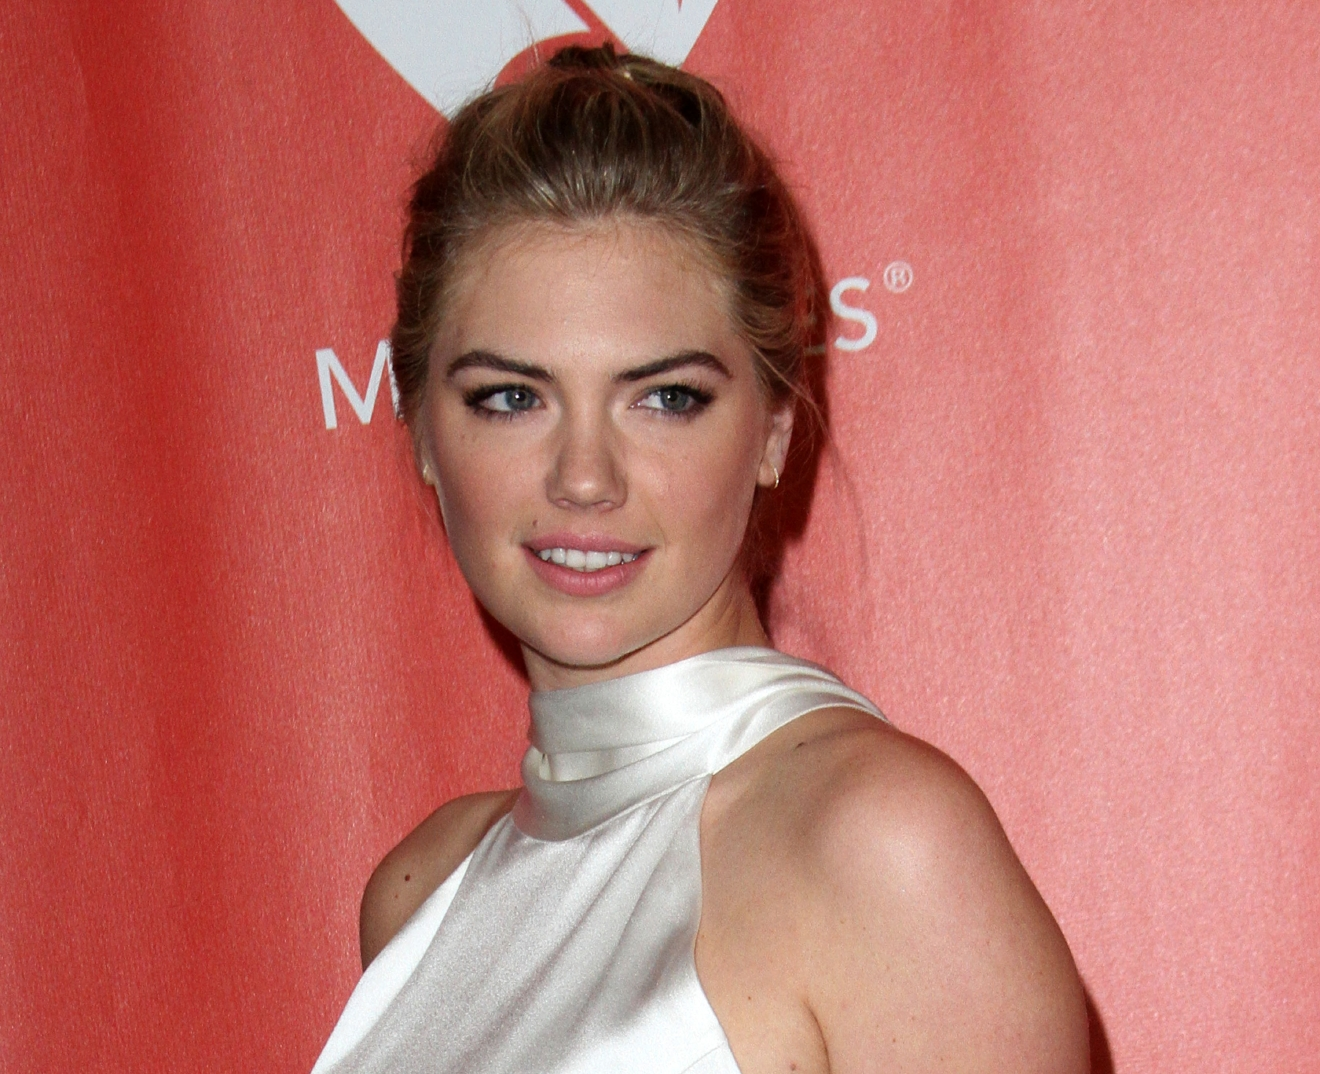 MusiCares 2017 Person of the Year Dinner honoring Tom Petty held at the Los Angeles Convention Center.  Featuring: Kate Upton Where: Los Angeles, California, United States When: 11 Feb 2017 Credit: Adriana M. Barraza/WENN.com